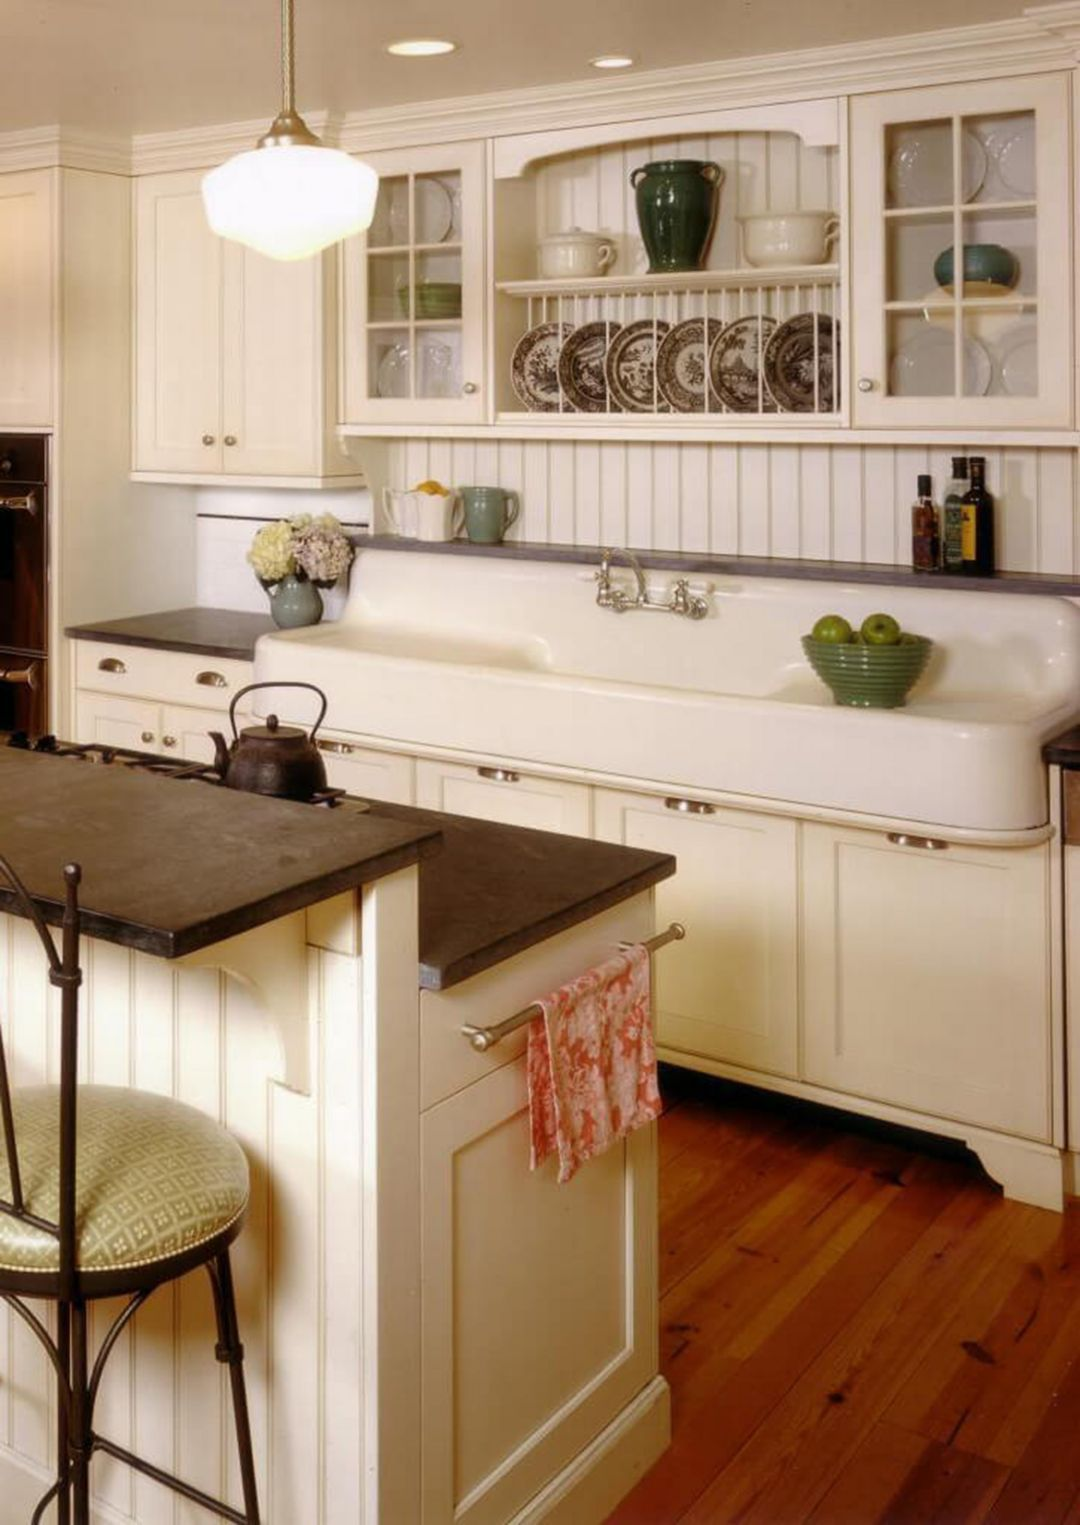 10 Awesome Antique Kitchen Decoration Ideas for Your ... on antique kitchen wallpaper, antique your kitchen cabinets, antique tiny kitchens decorating, antique kitchen art, antique wall decorating ideas, antique style kitchen, antique small kitchen designs, antique kitchen decor, antique luxury kitchens, antique looking kitchen, antique olive kitchen cabinets,